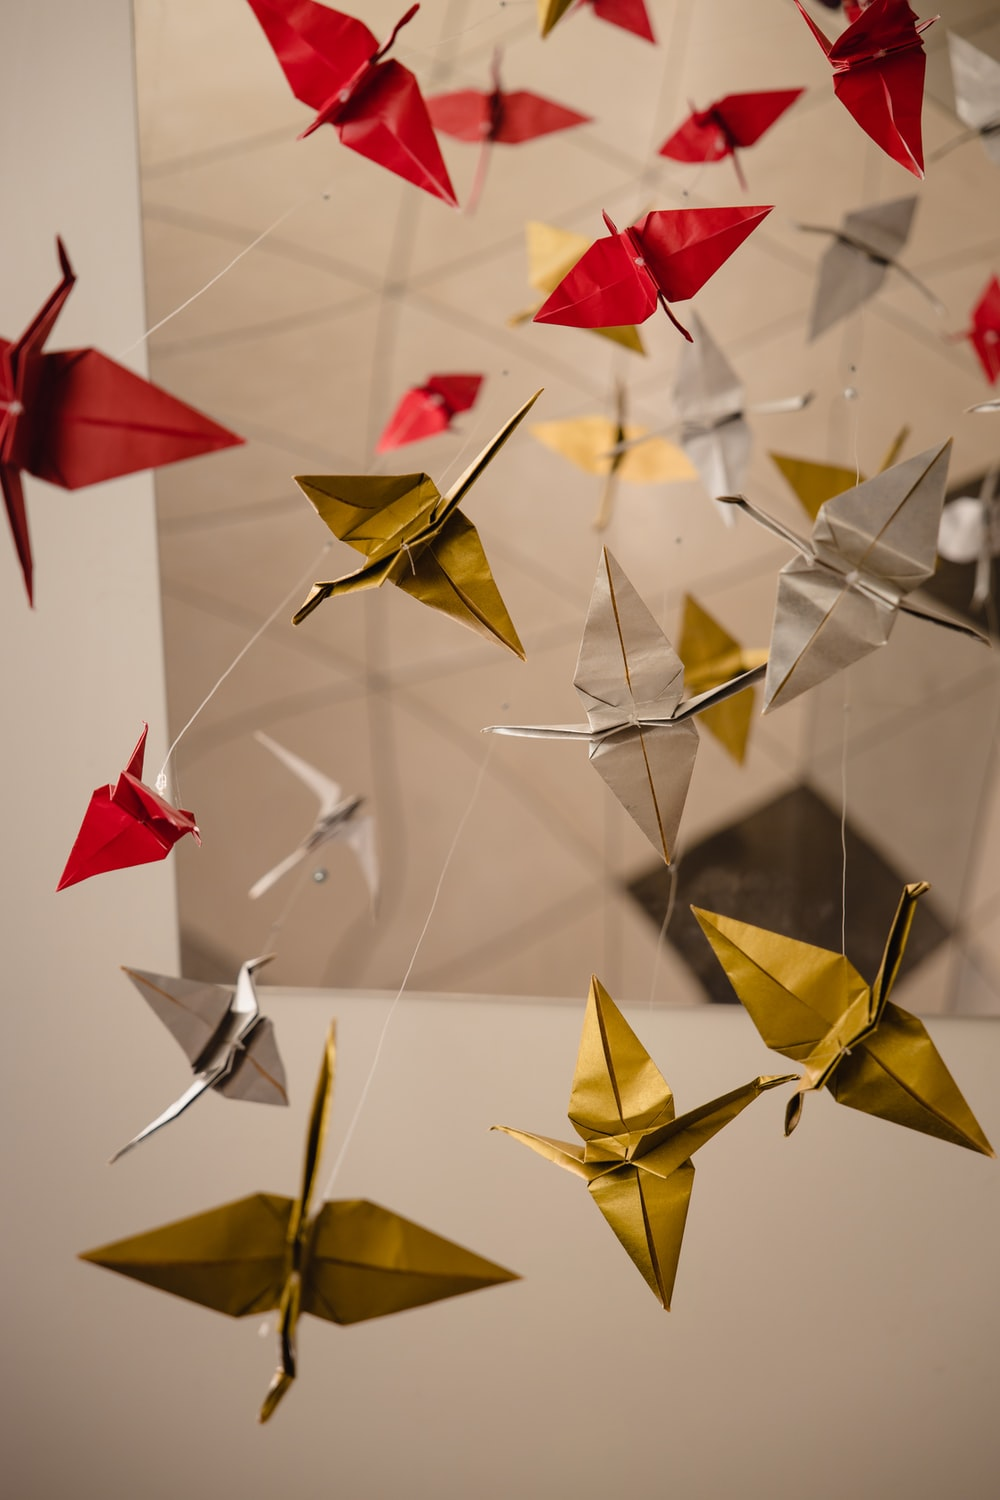 yellow and red paper boats